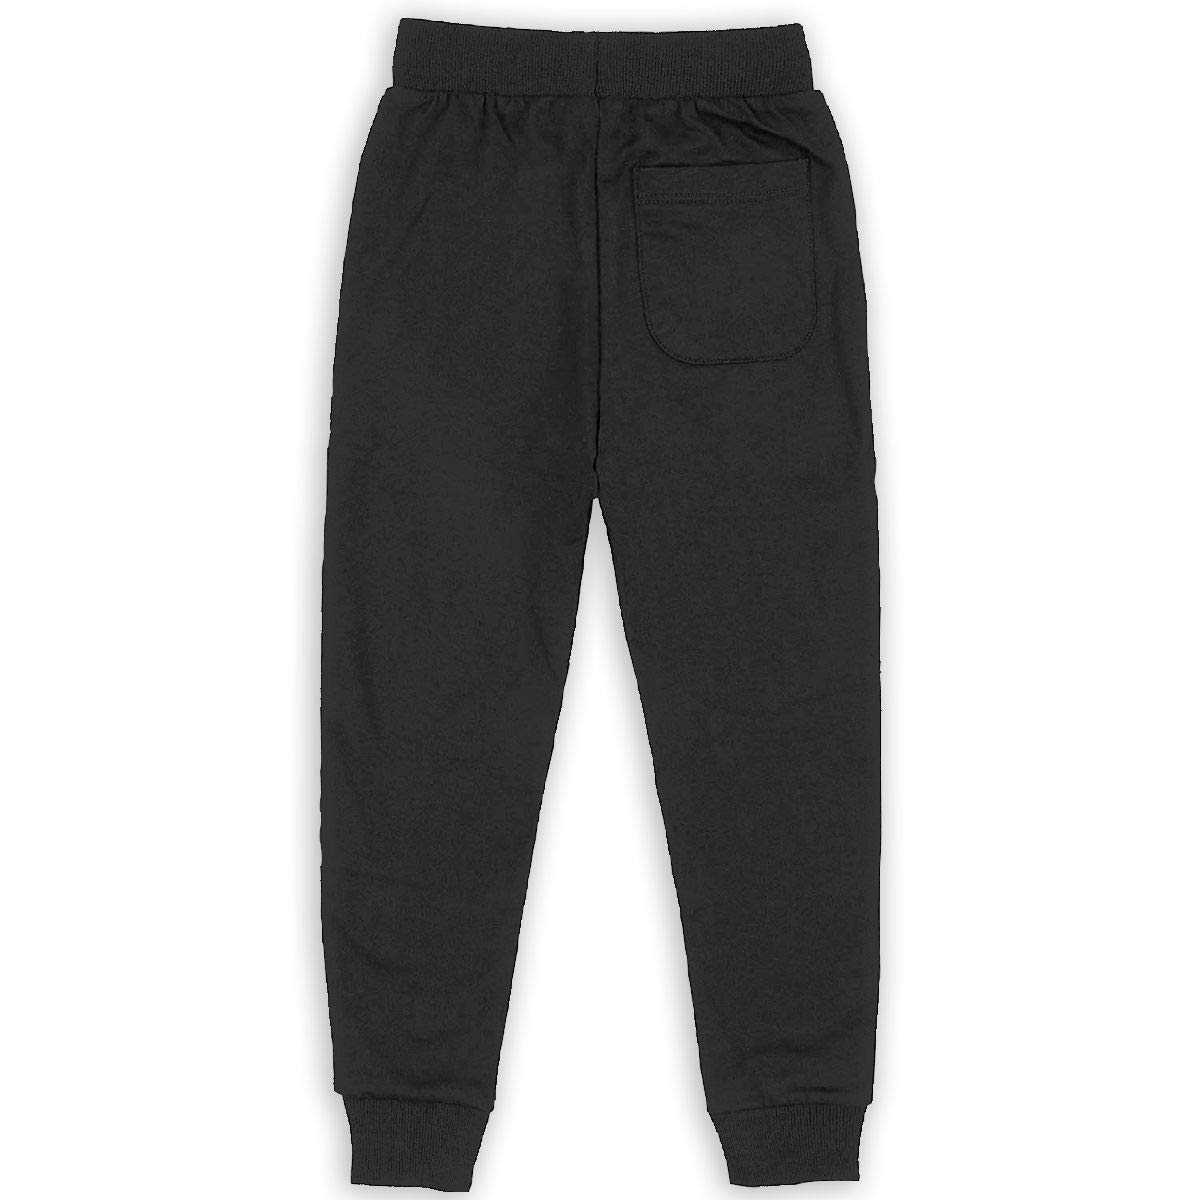 AaAarr Youths Jazz Music Logo Drawstring Sweatpants for Boys and Girls